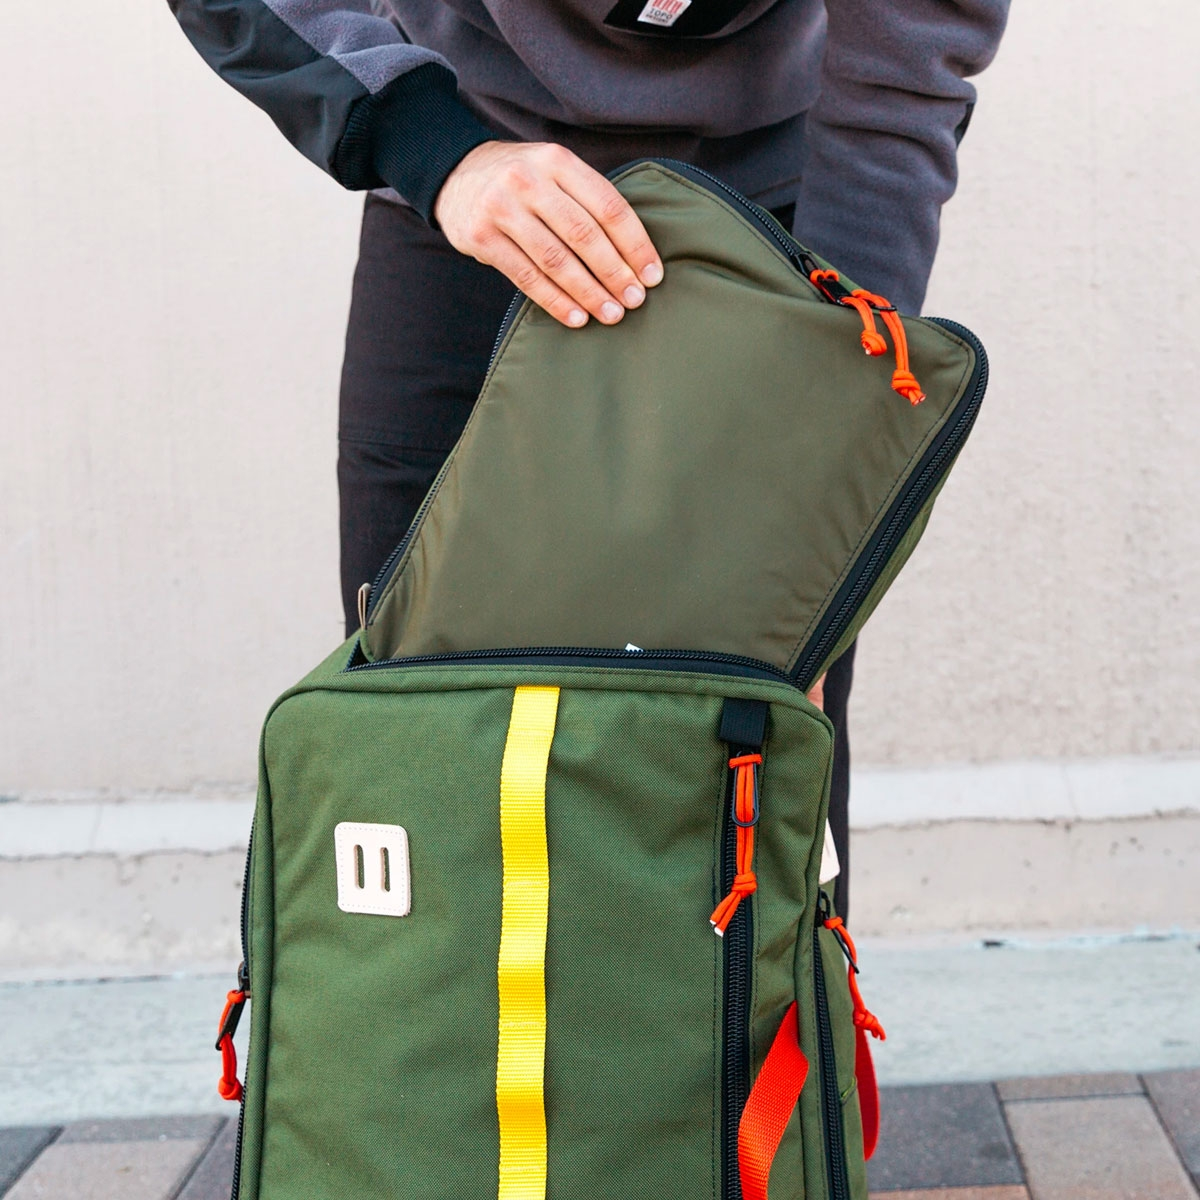 Topo Designs Pack Bags Olive, a simple, durable and highly functional way to organize your luggage